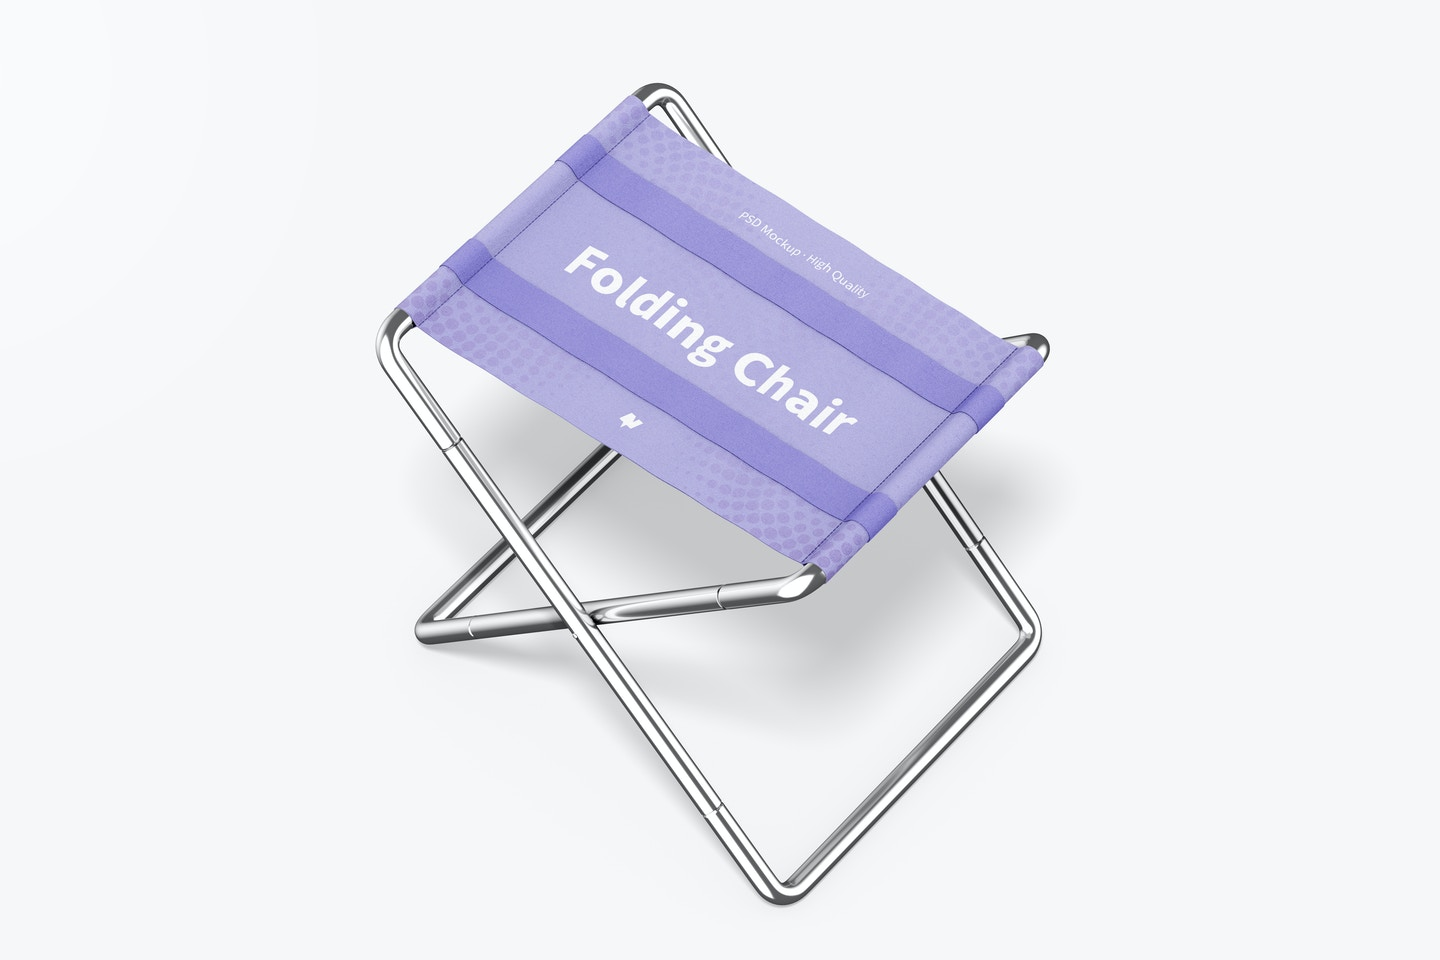 Folding Chairs Mockup, Perspective